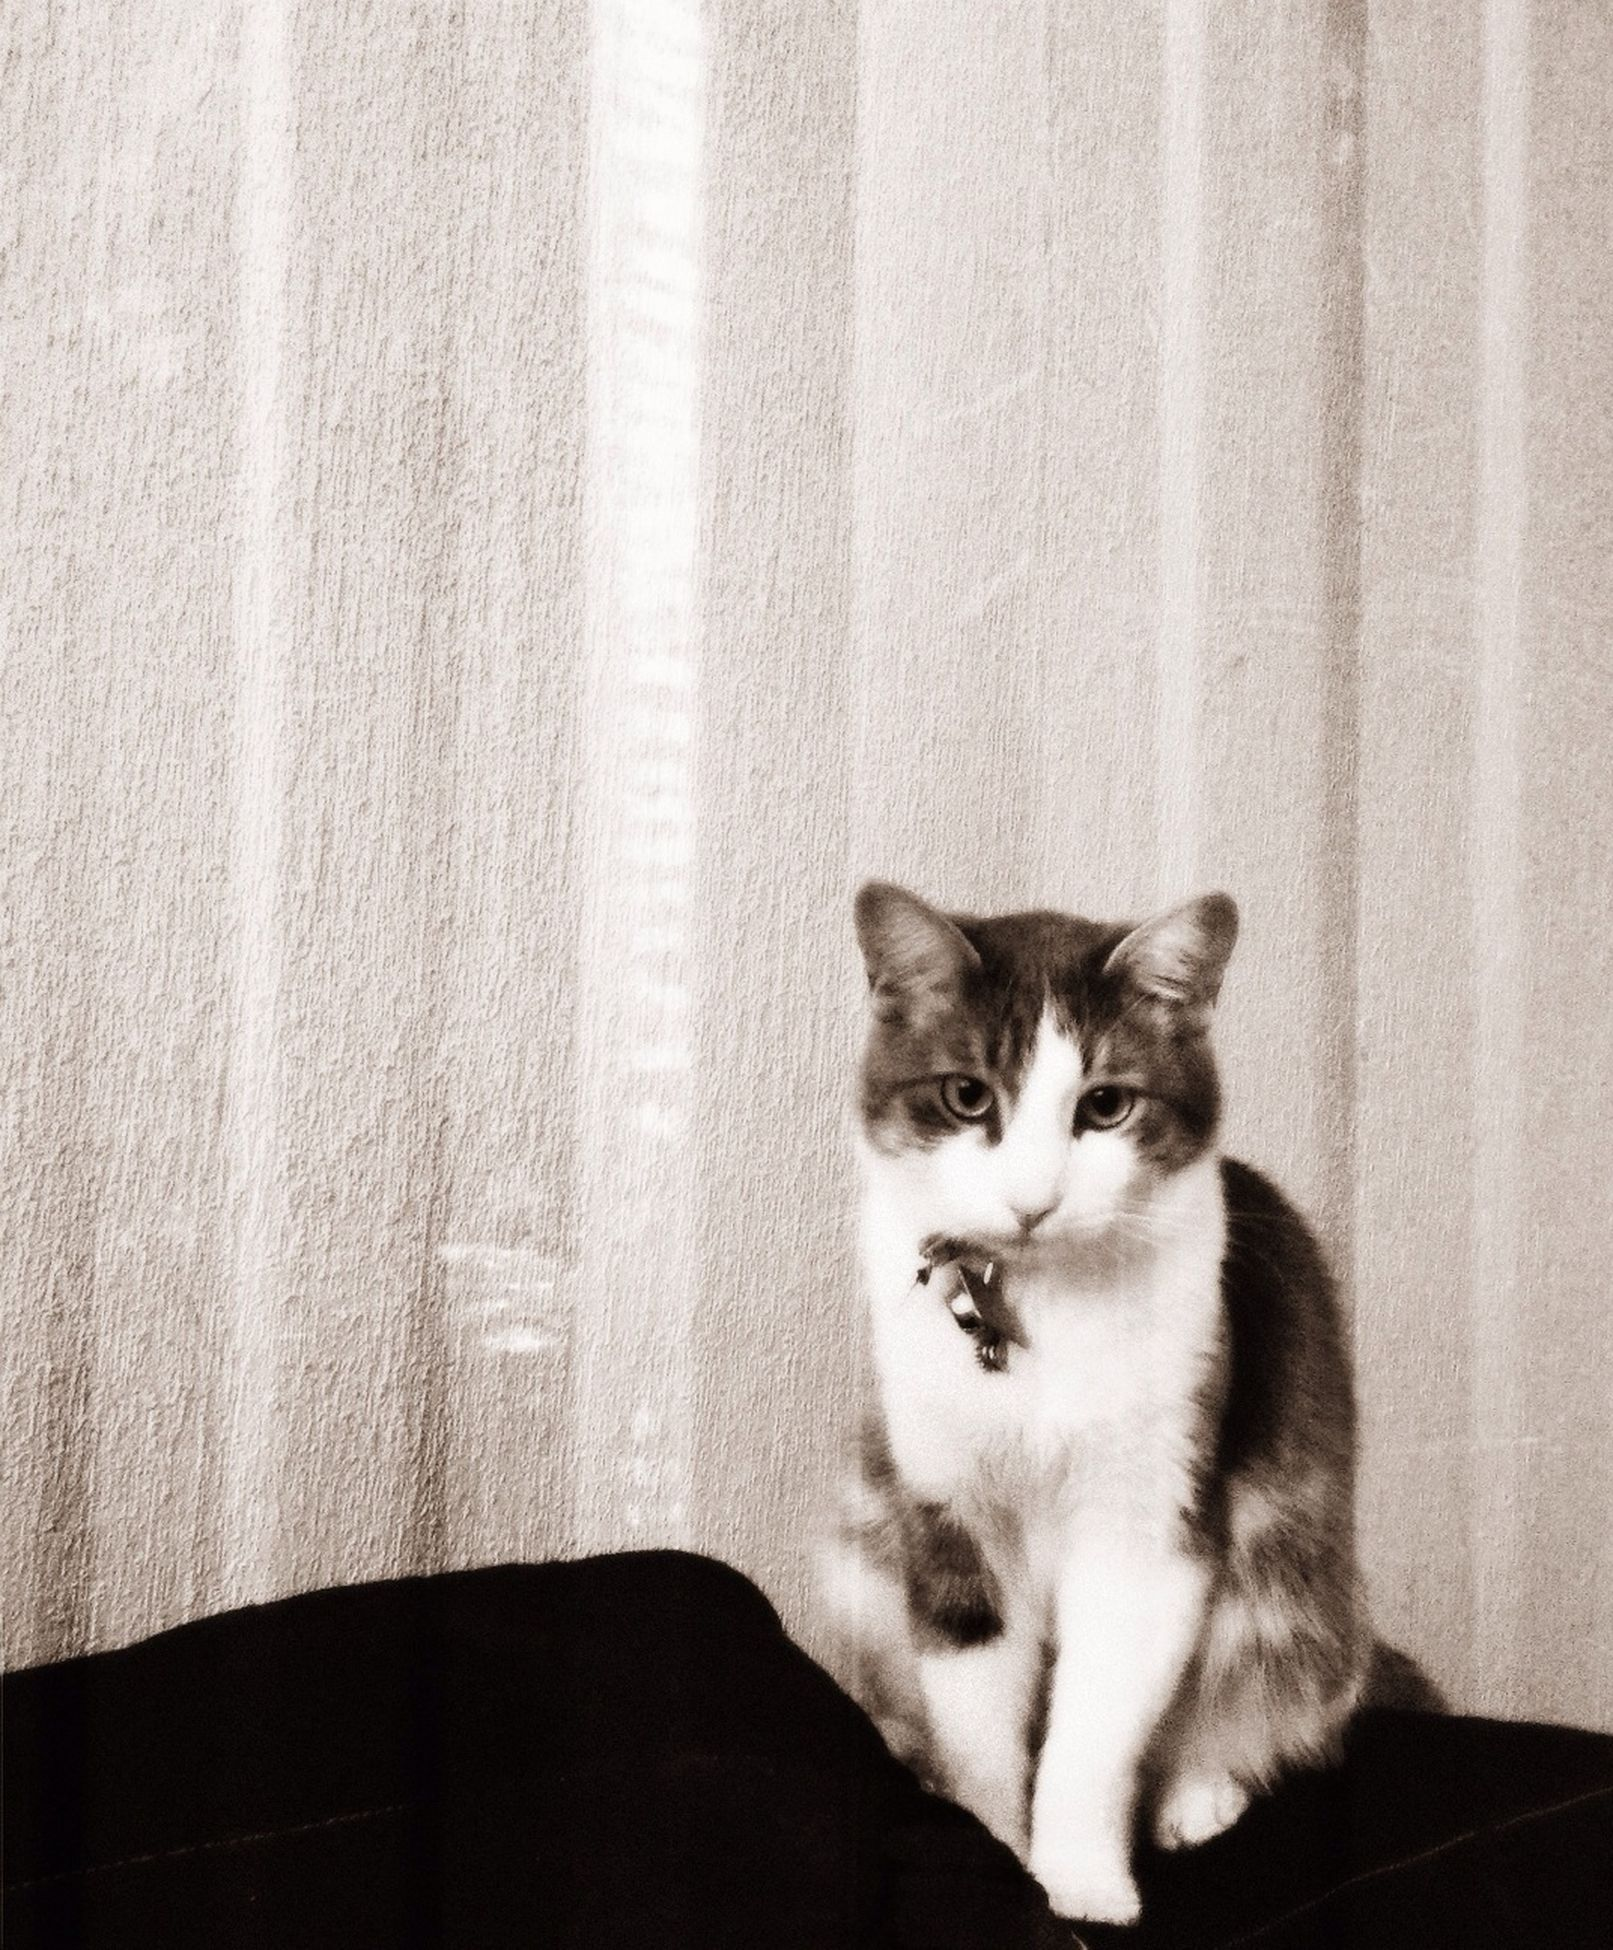 Cat Blackandwhite Portrait PixlrExpress AMPt - Shoot Or Die